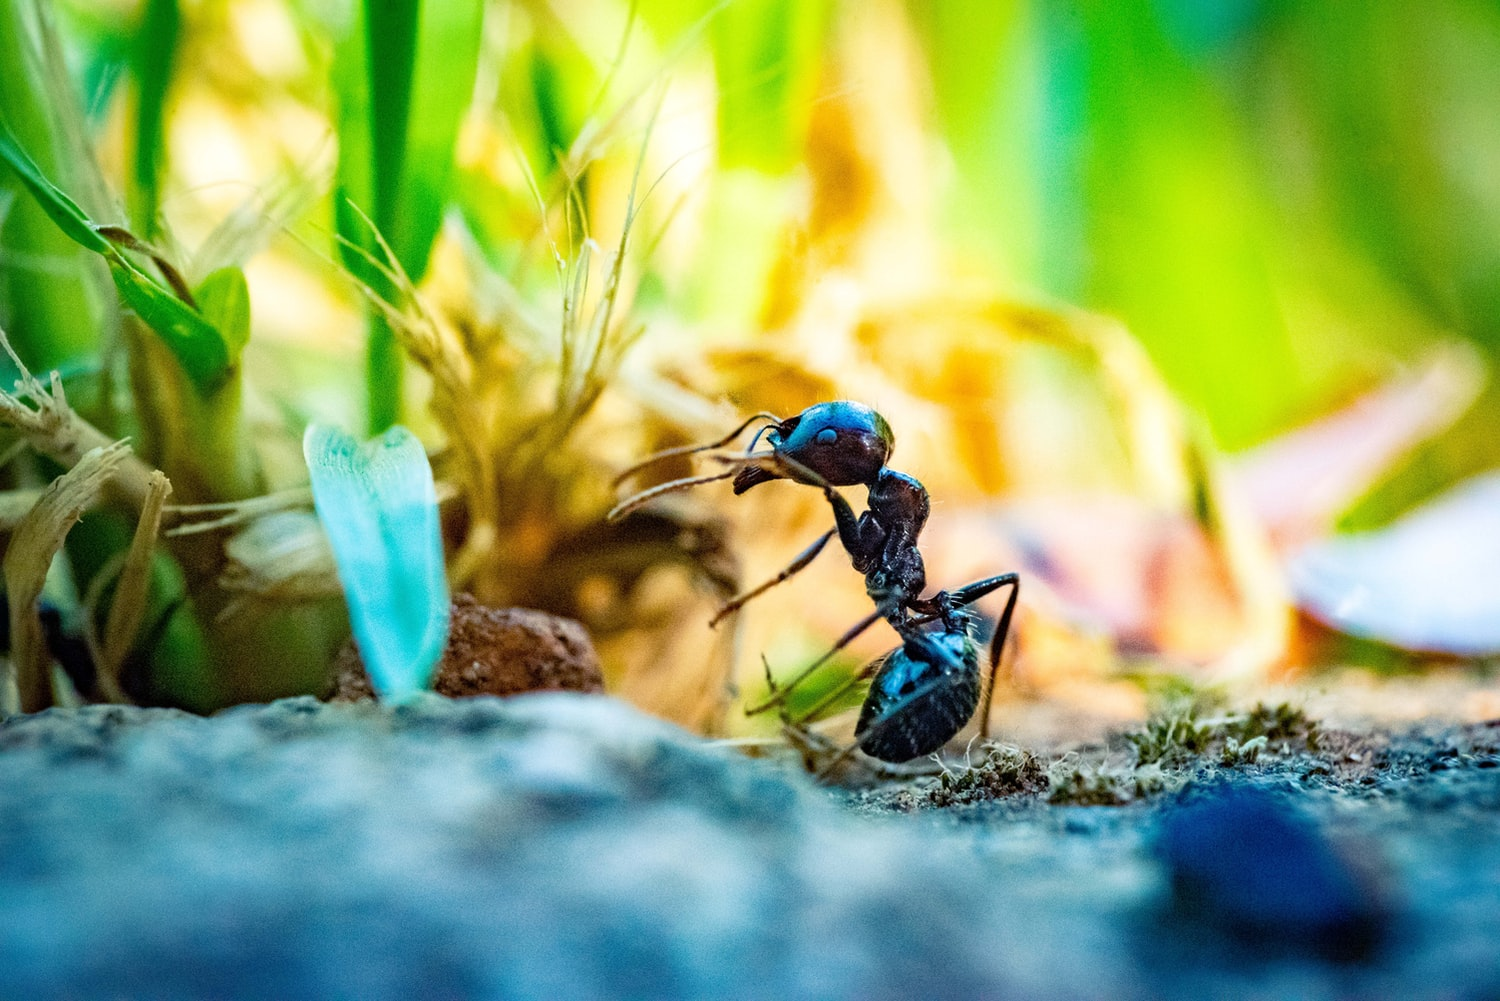 ant resting near the plant